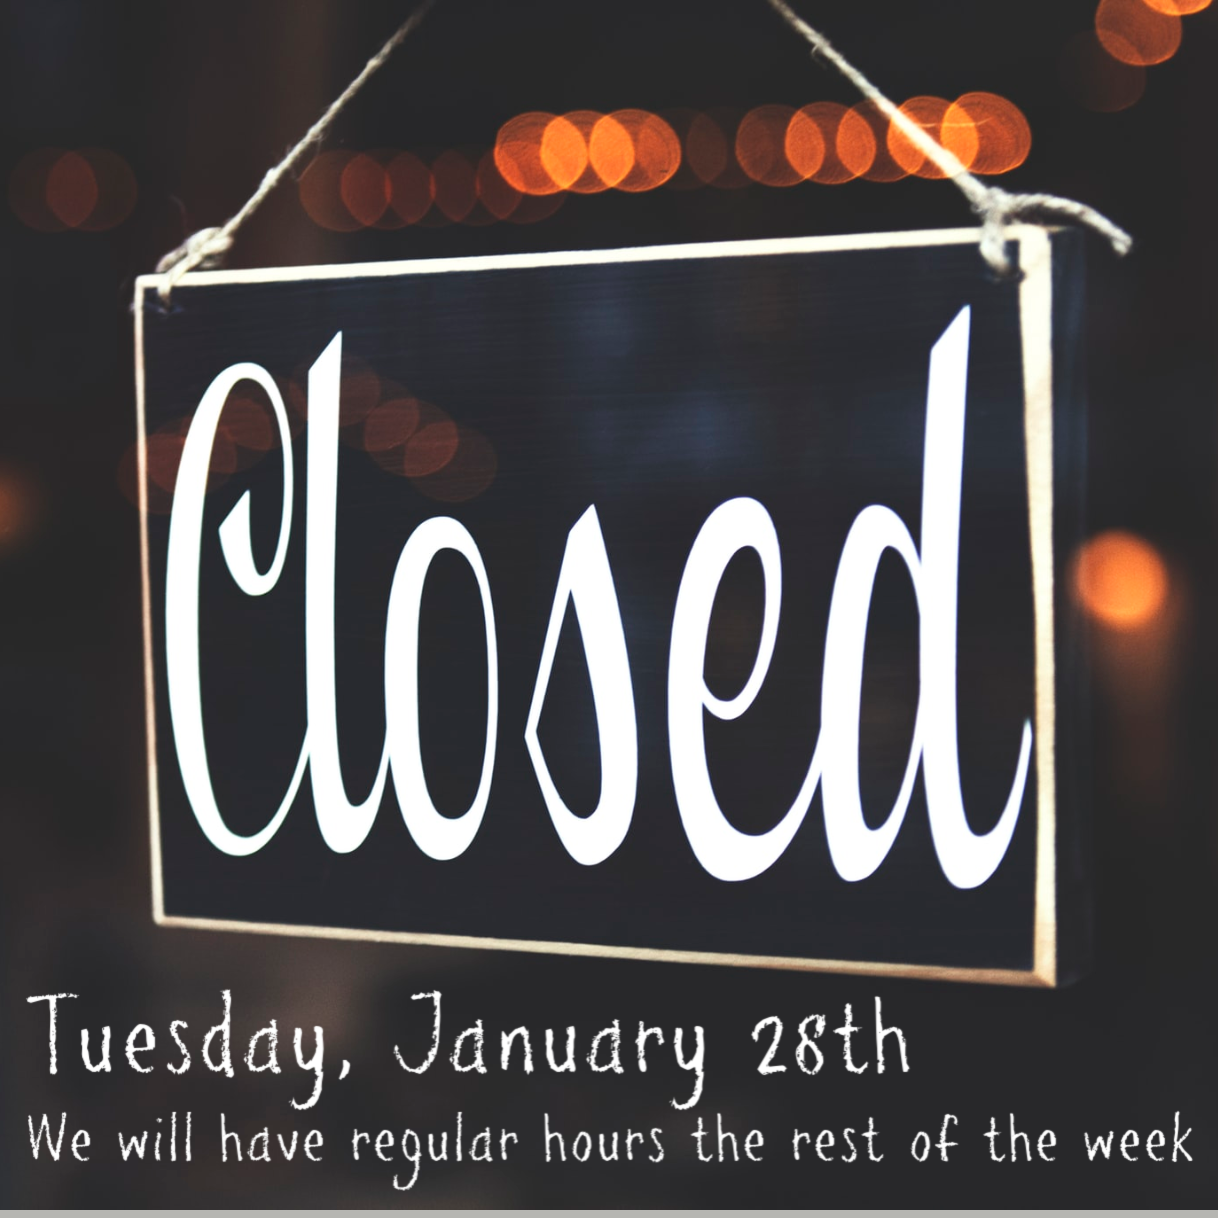 The Library is Closed on Tuesday, January 28th